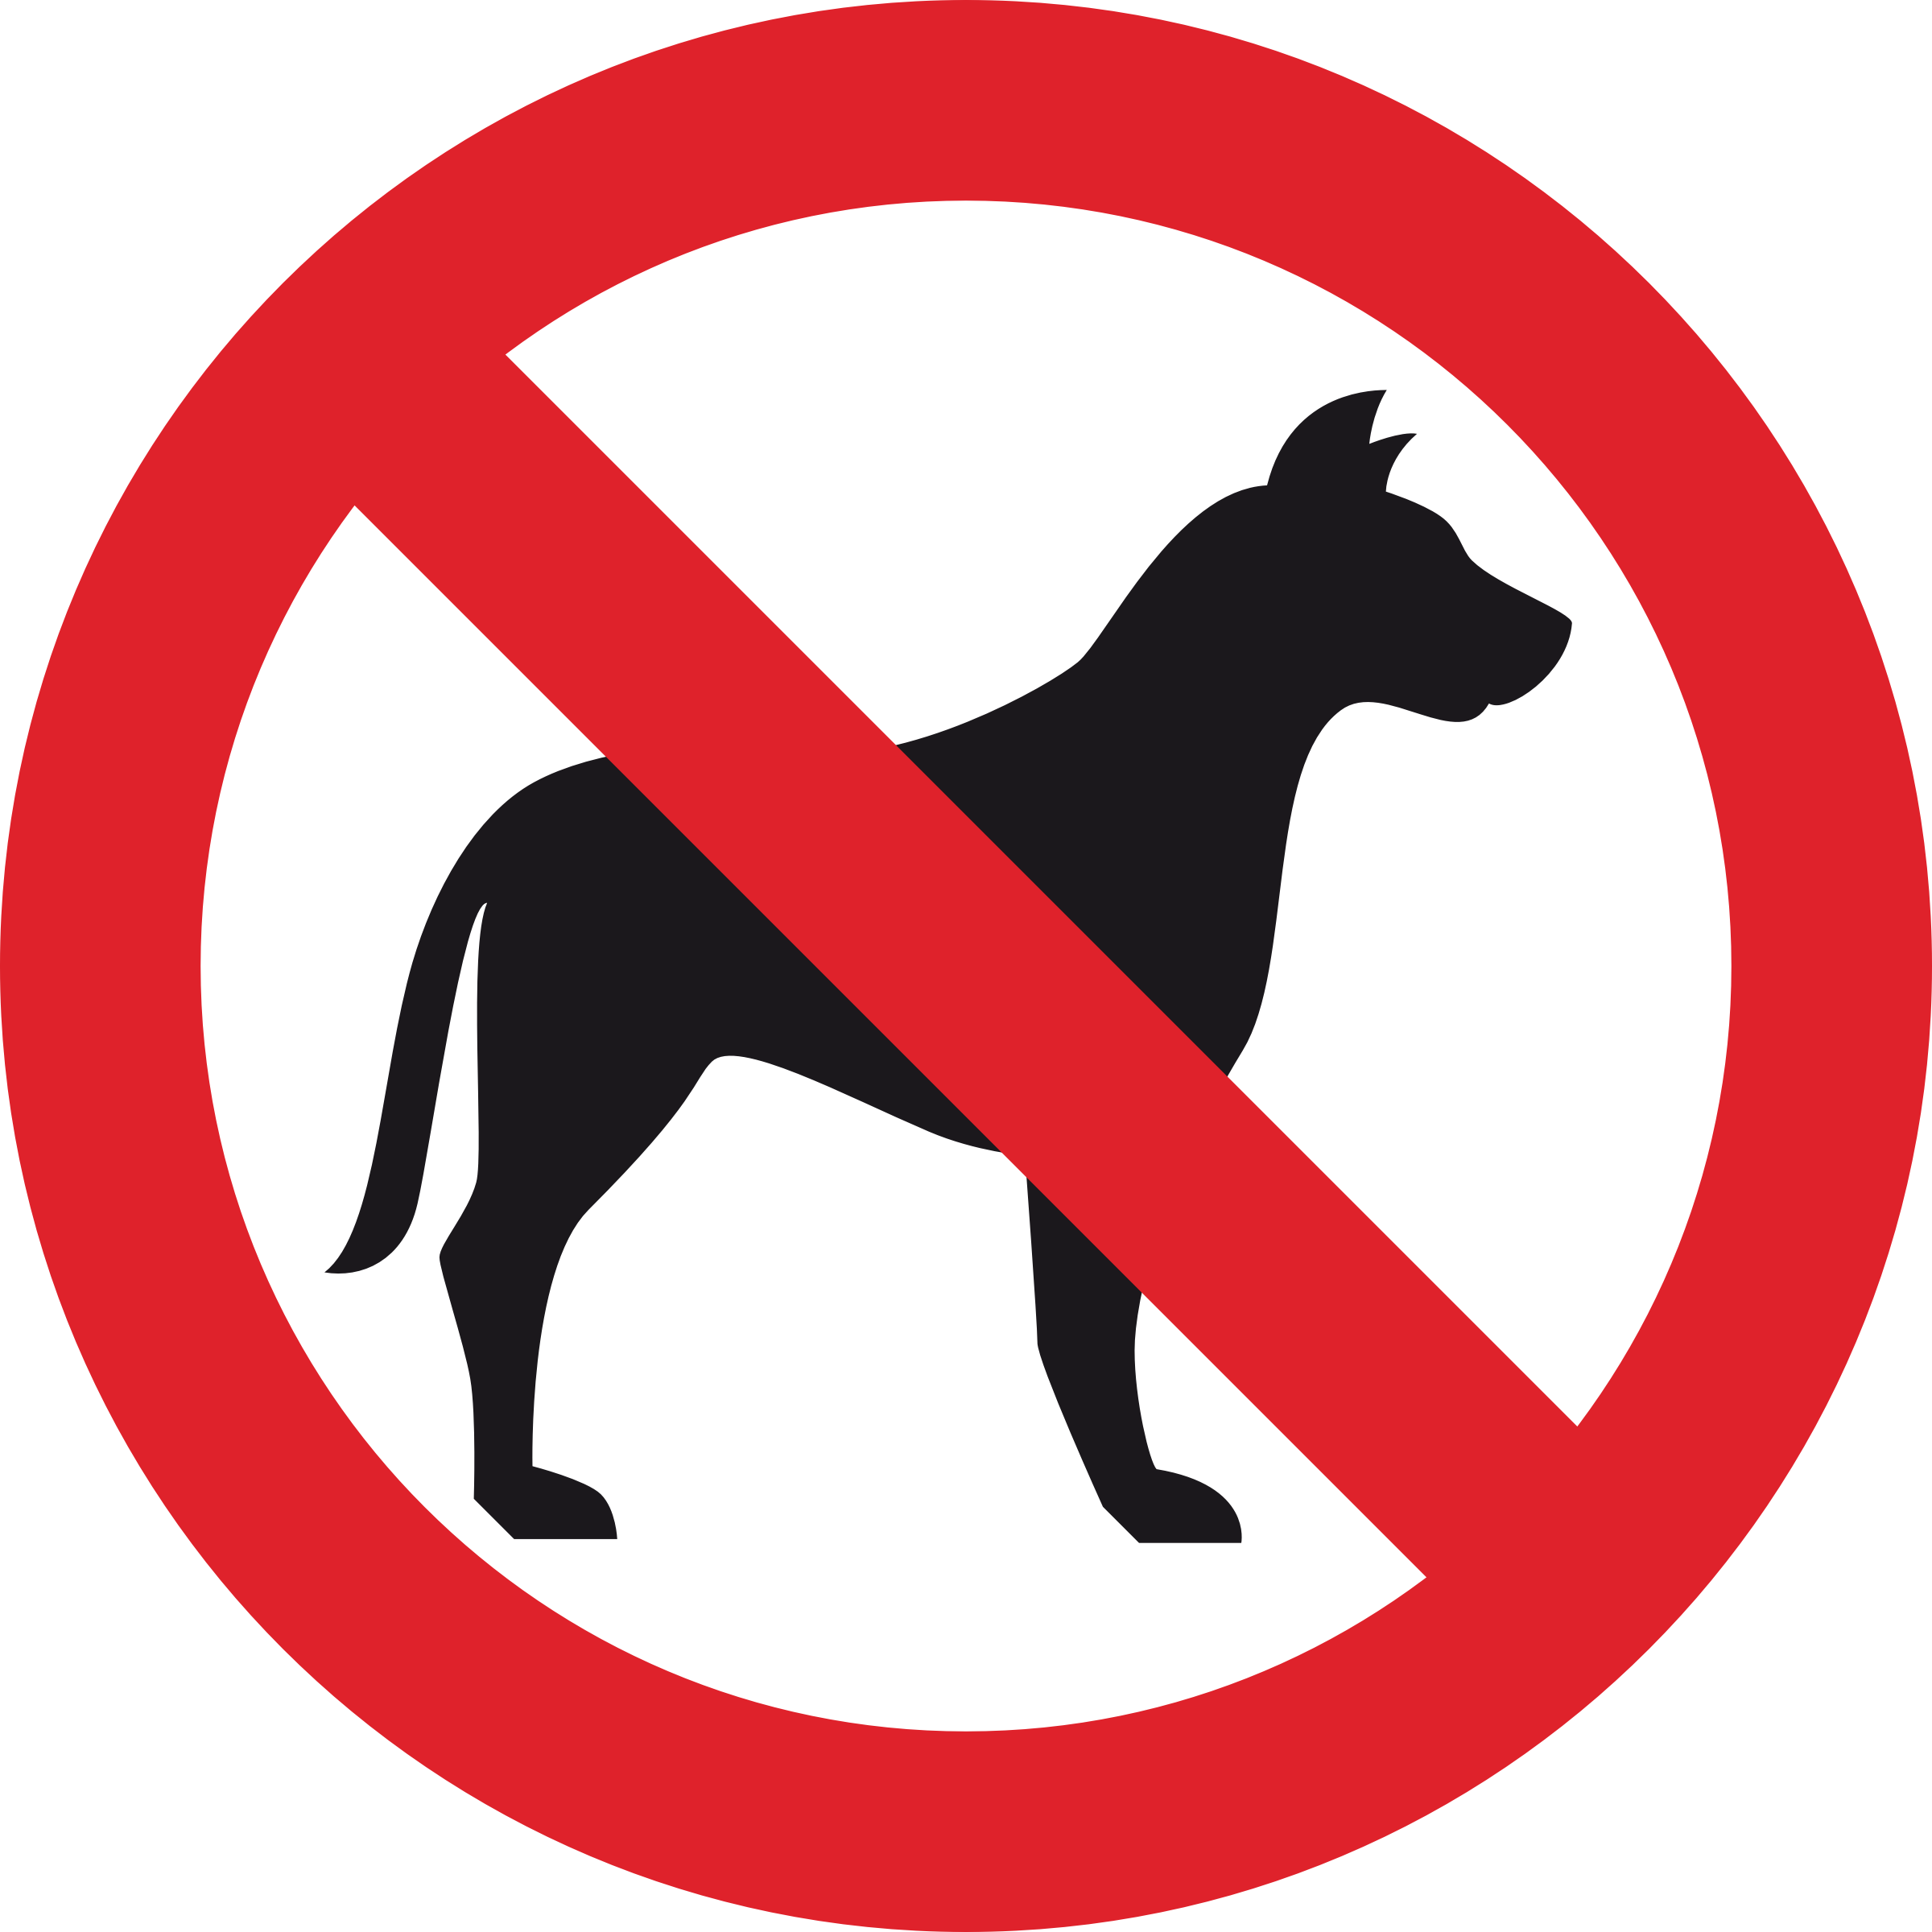 Dog peeing clipart vector transparent No Dog Sign Icons PNG - Free PNG and Icons Downloads vector transparent